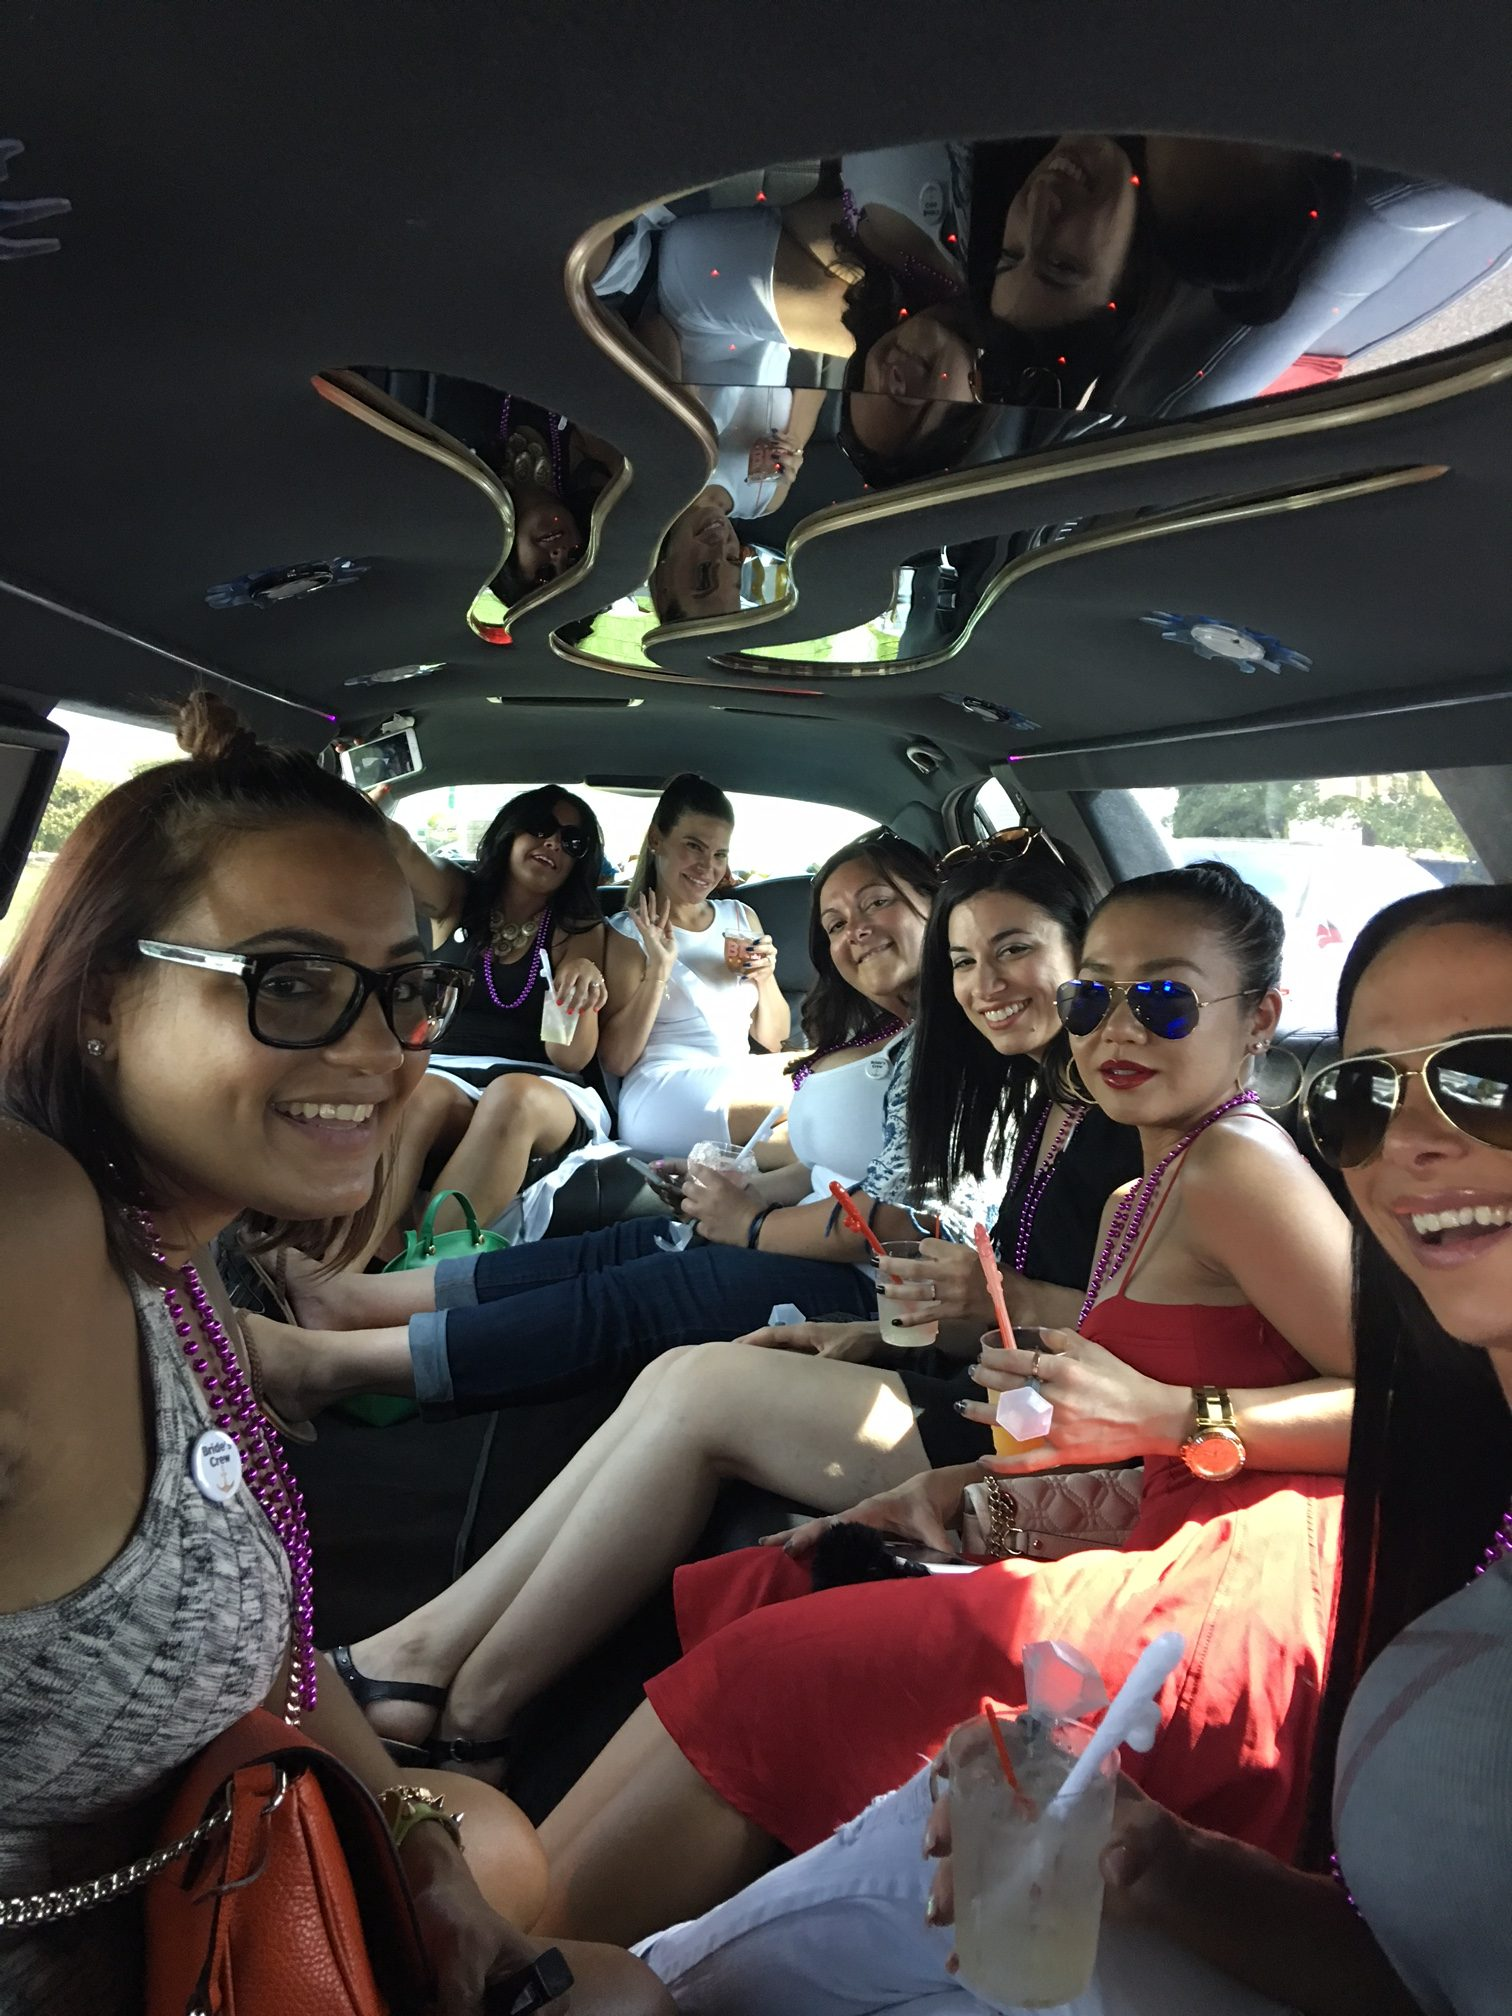 brick nj limousine bachelorette party